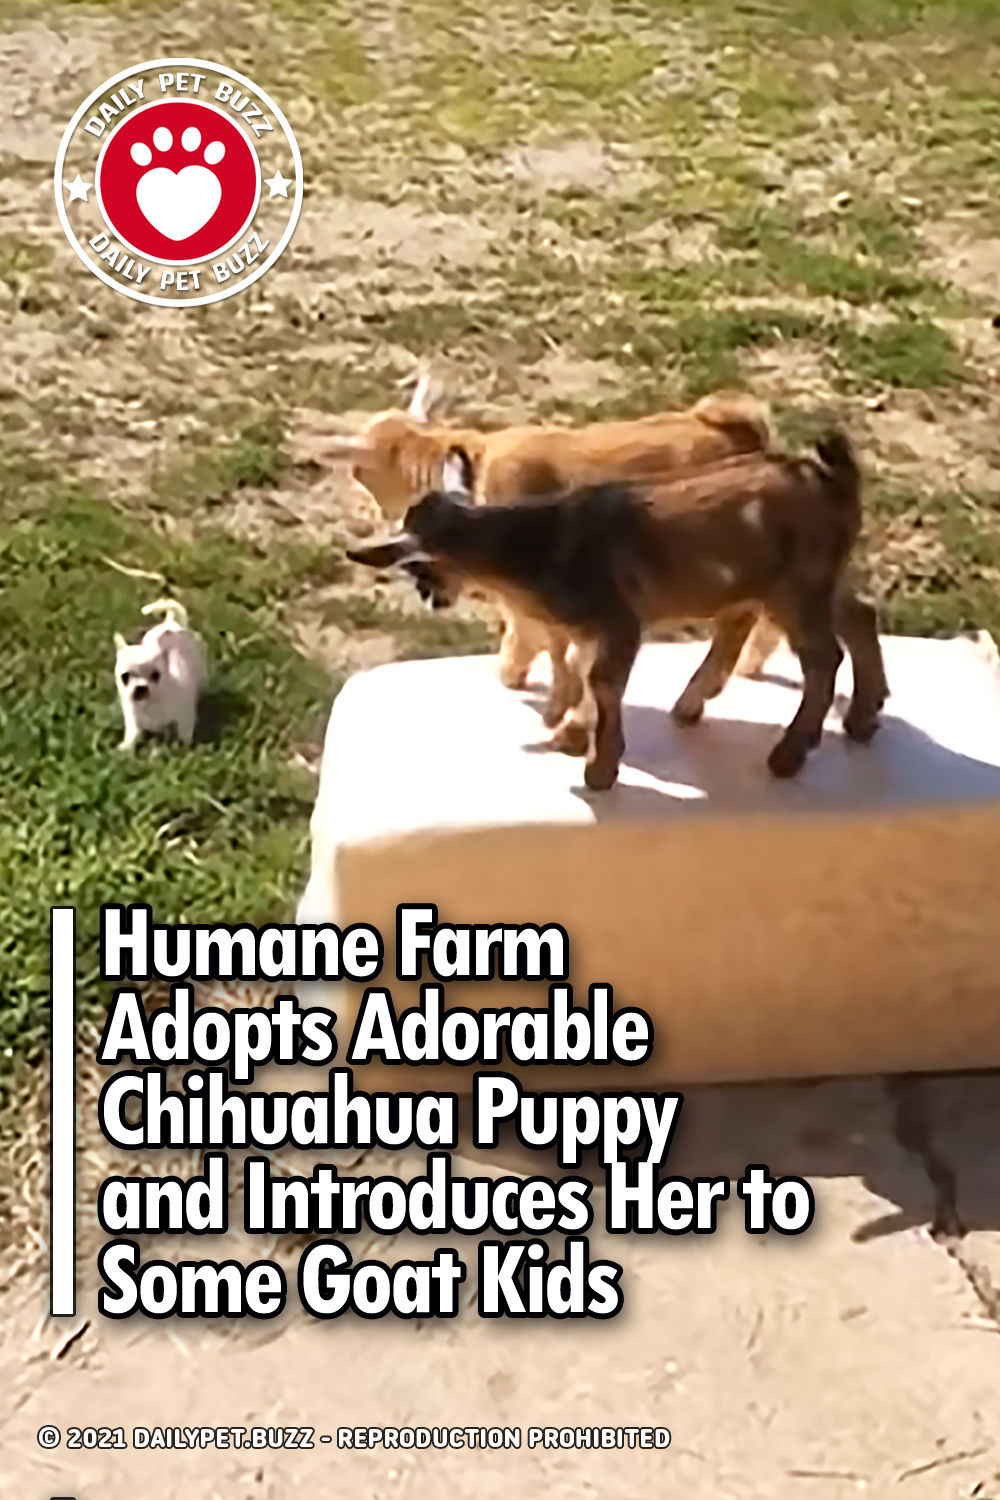 Humane Farm Adopts Adorable Chihuahua Puppy and Introduces Her to Some Goat Kids